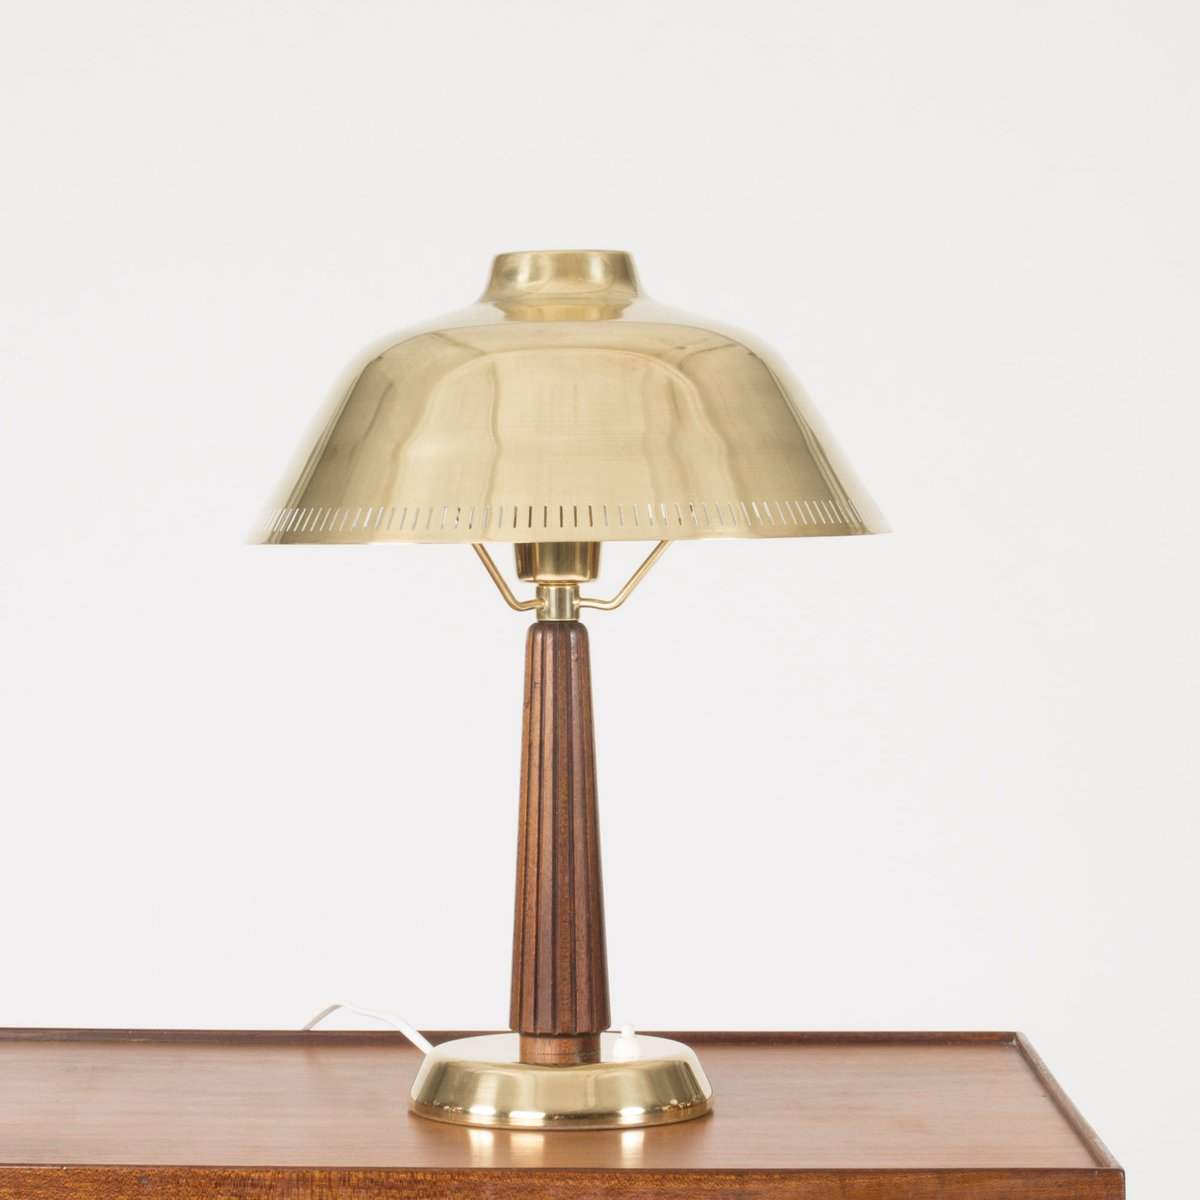 Nice Mid Century Brass And Mahogany Table Lamp By Hans Bergström For ASEA, 1950s